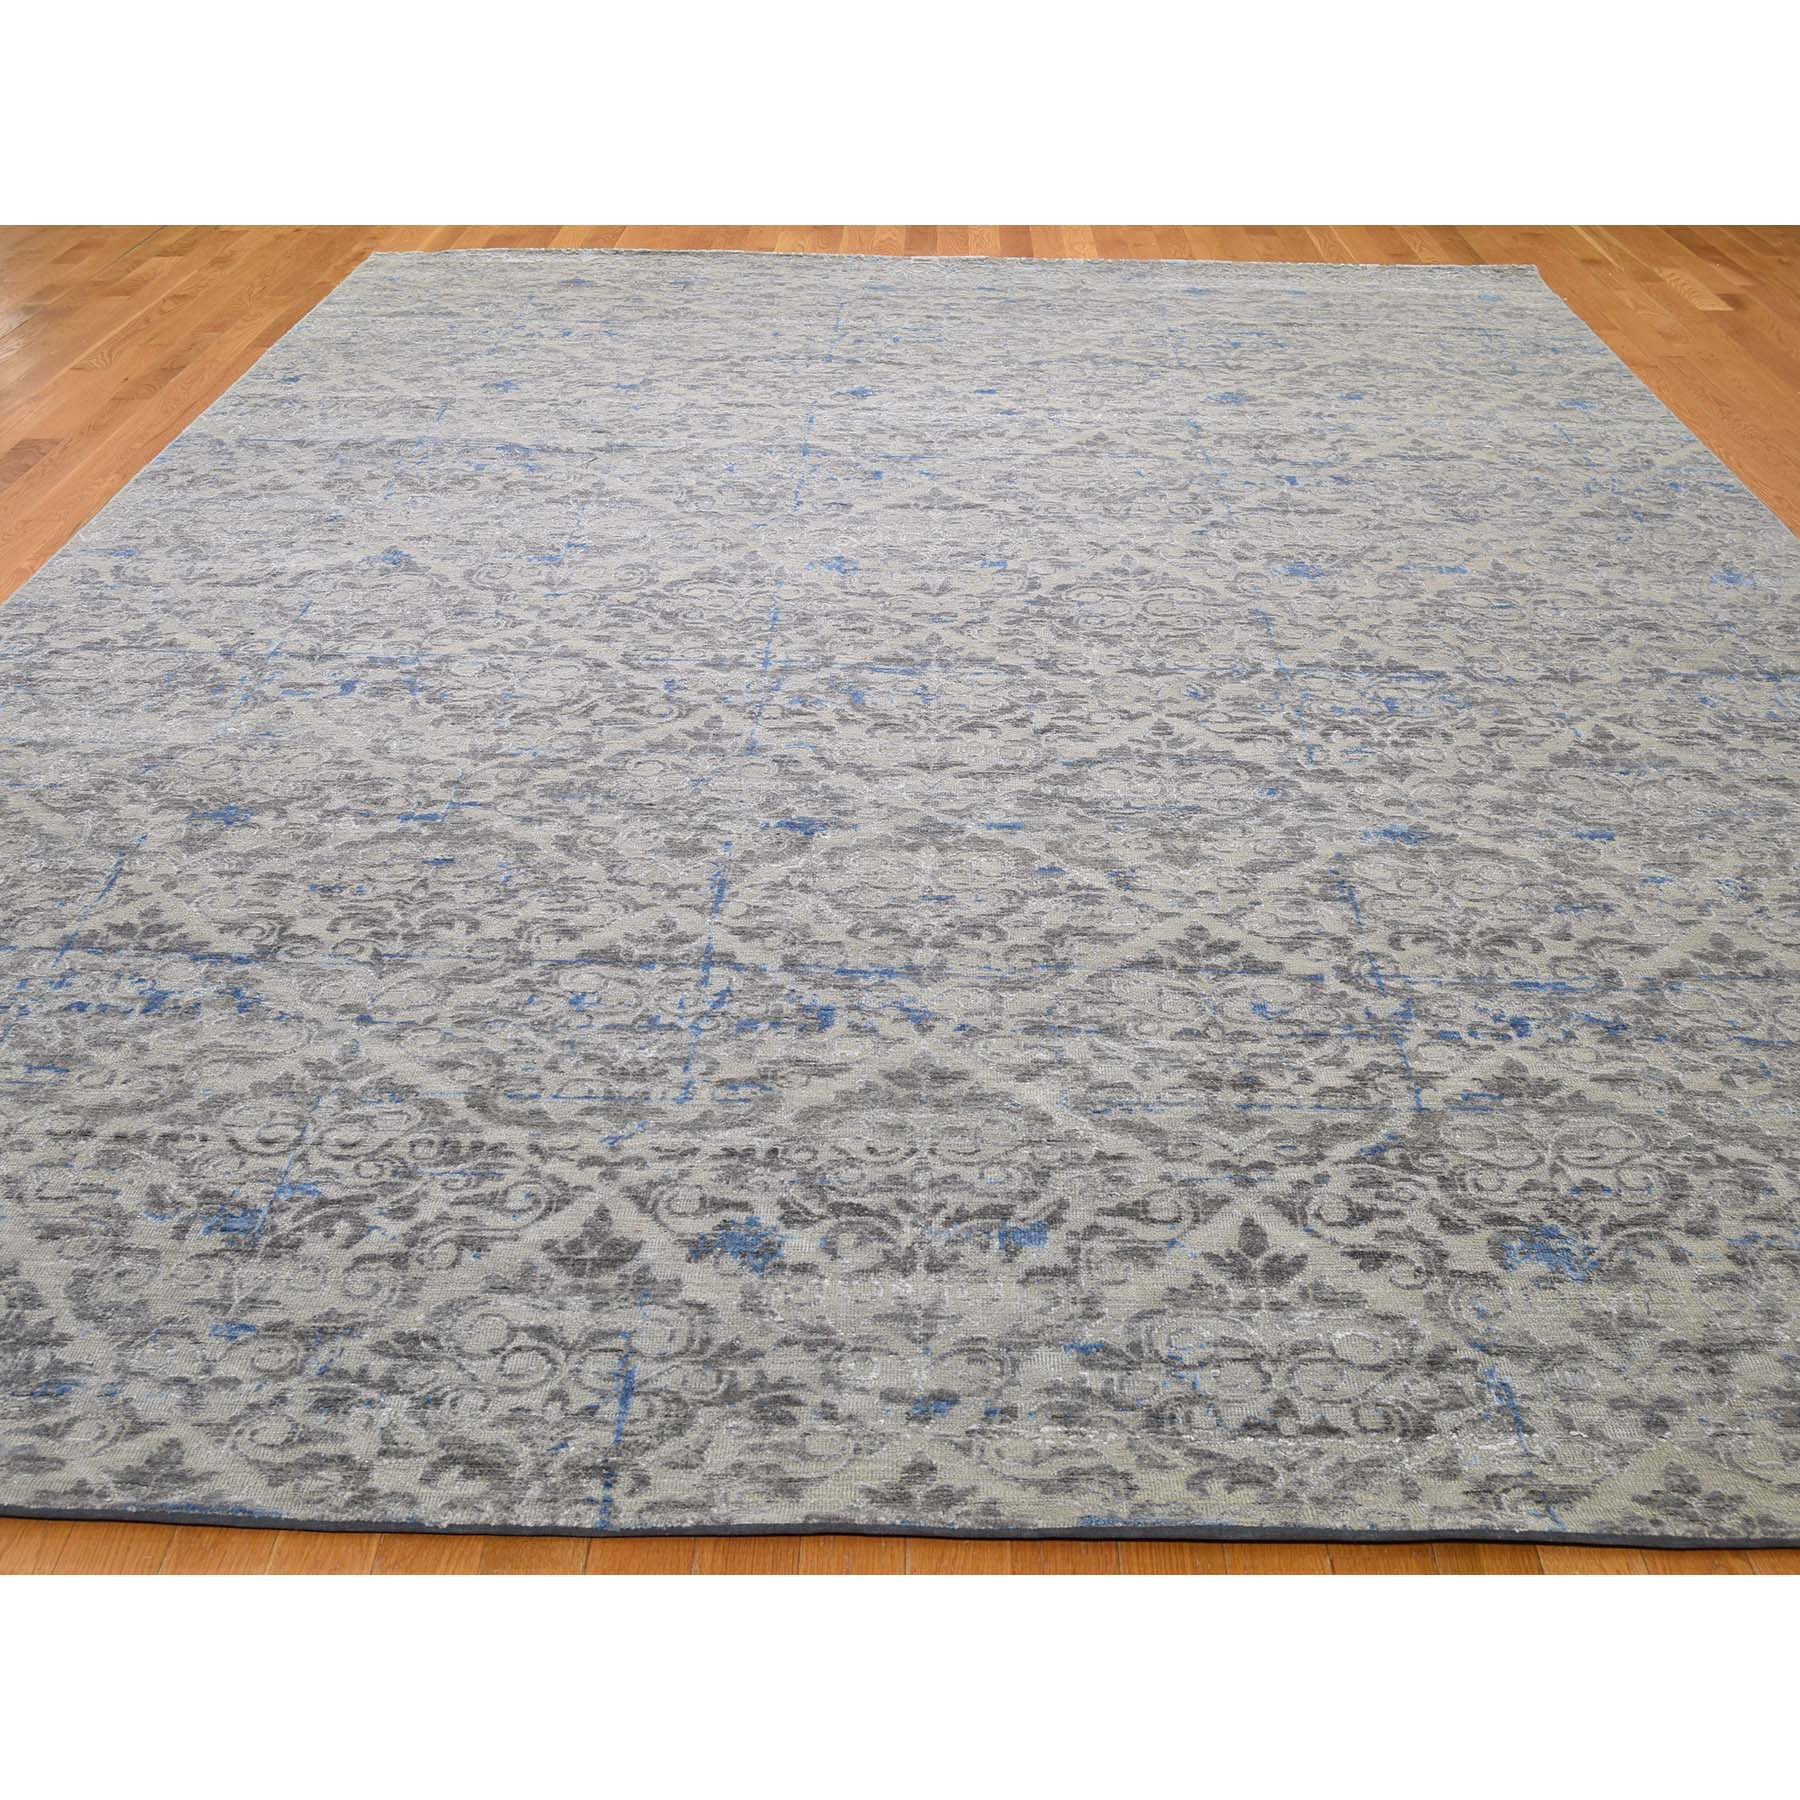 "9'8""x13'6"" Pure Silk With Textured Wool Trellis Garden Design Hand Woven Oriental Rug"